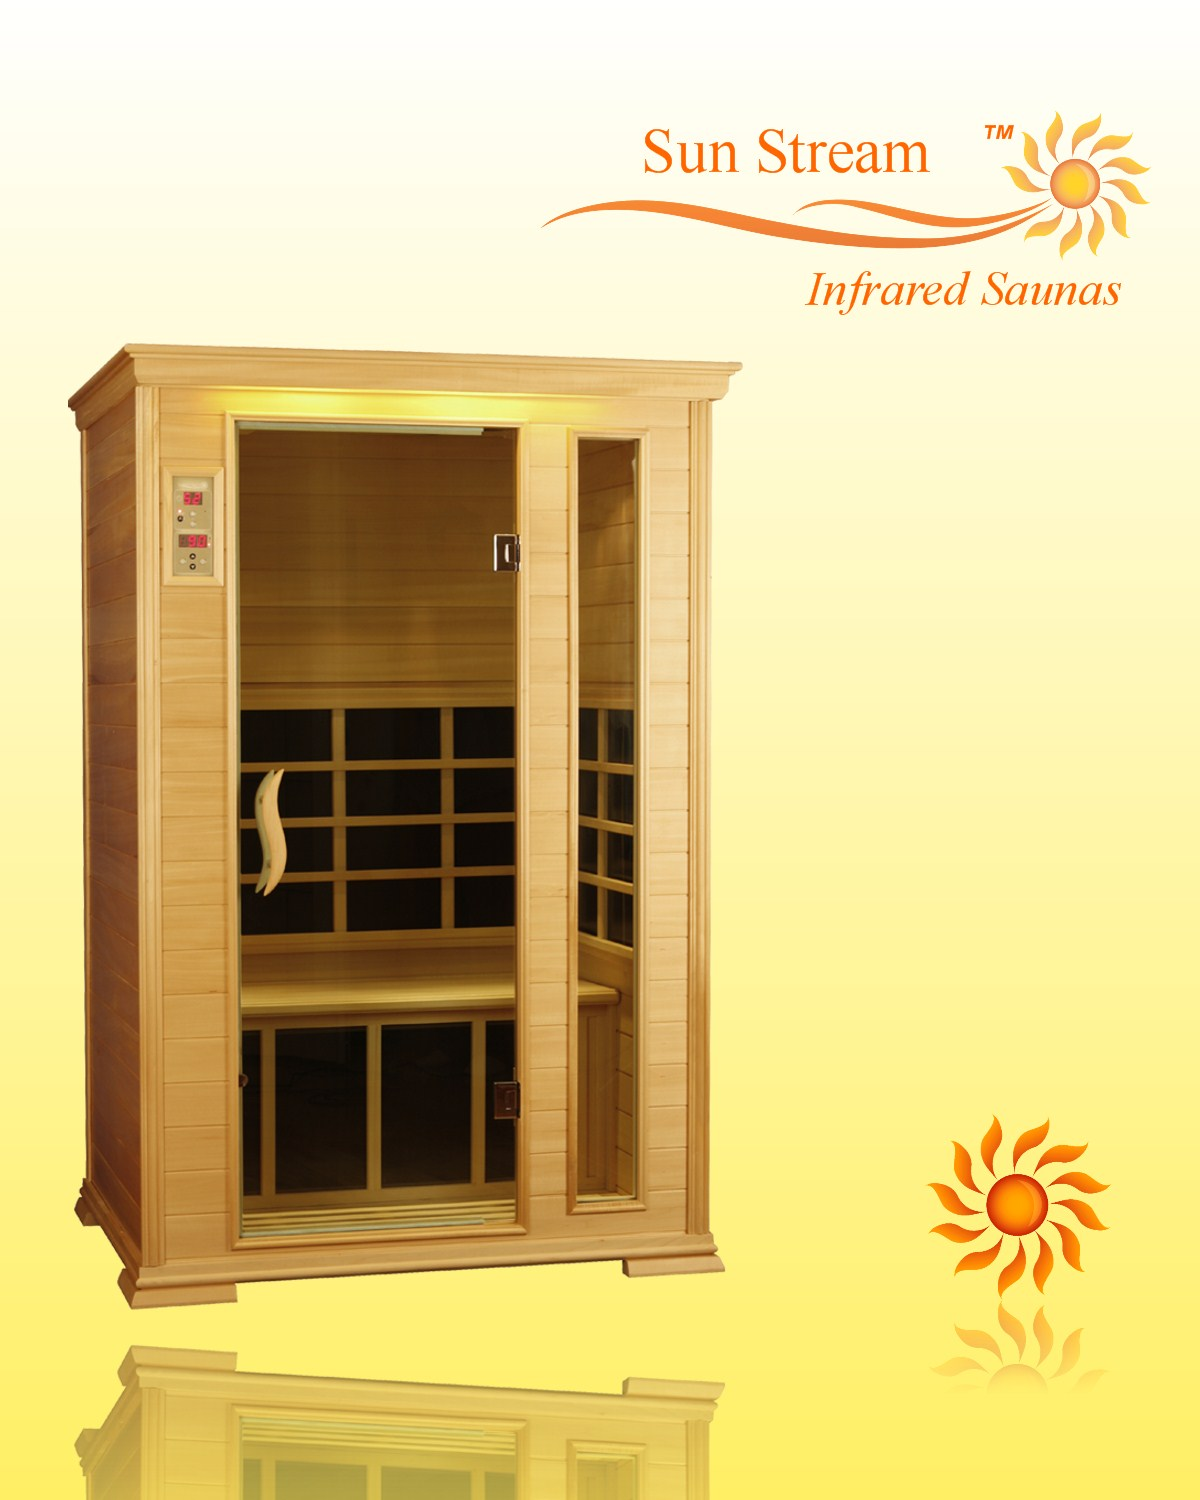 Sun Stream Infrared Sauna